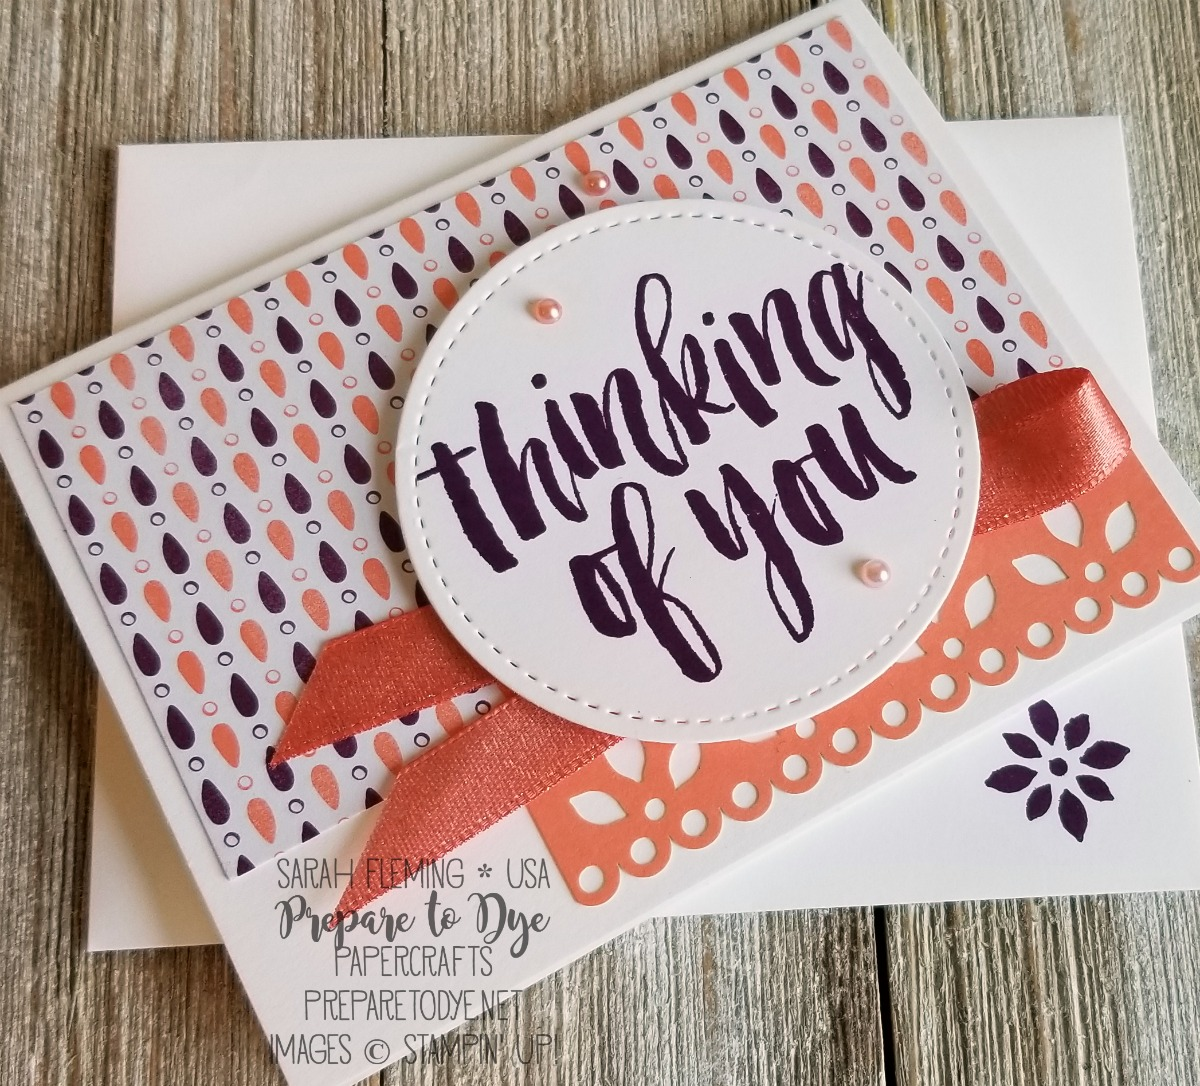 Stampin' Up! Delightfully Detailed Note Cards, Delightfully Detailed Memories & More cards, Stitched Shapes dies - Sarah Fleming - Prepare to Dye Papercrafts